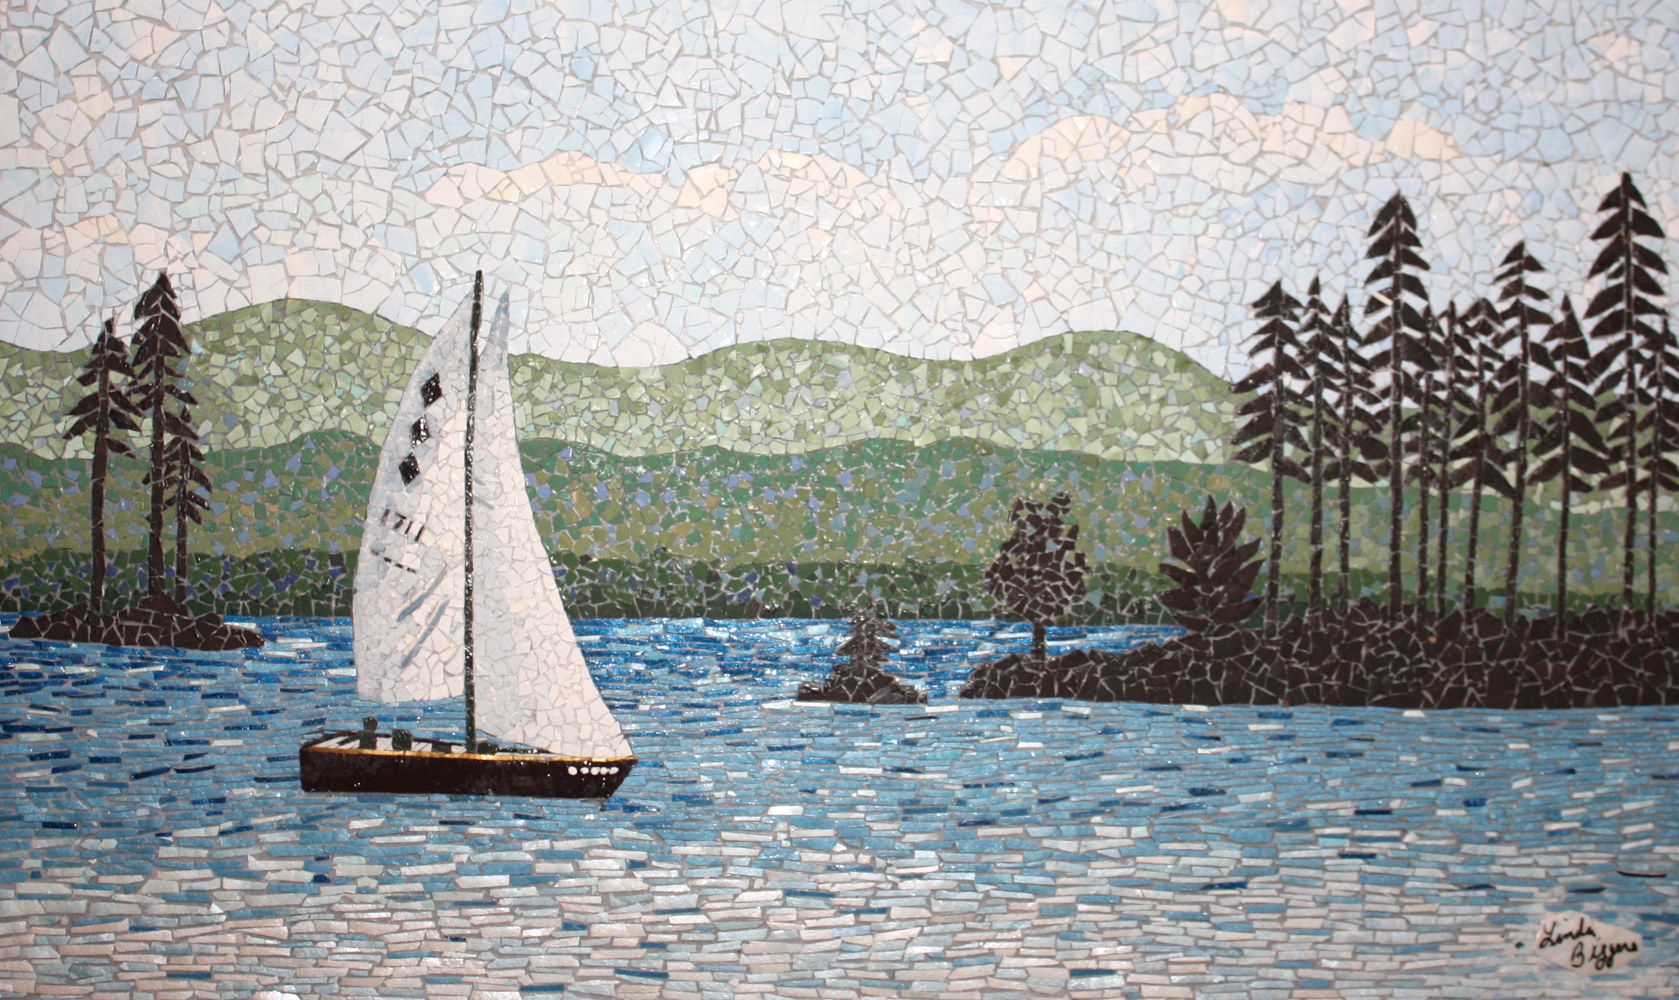 Afternoon on the Sacandaga by Linda Biggers